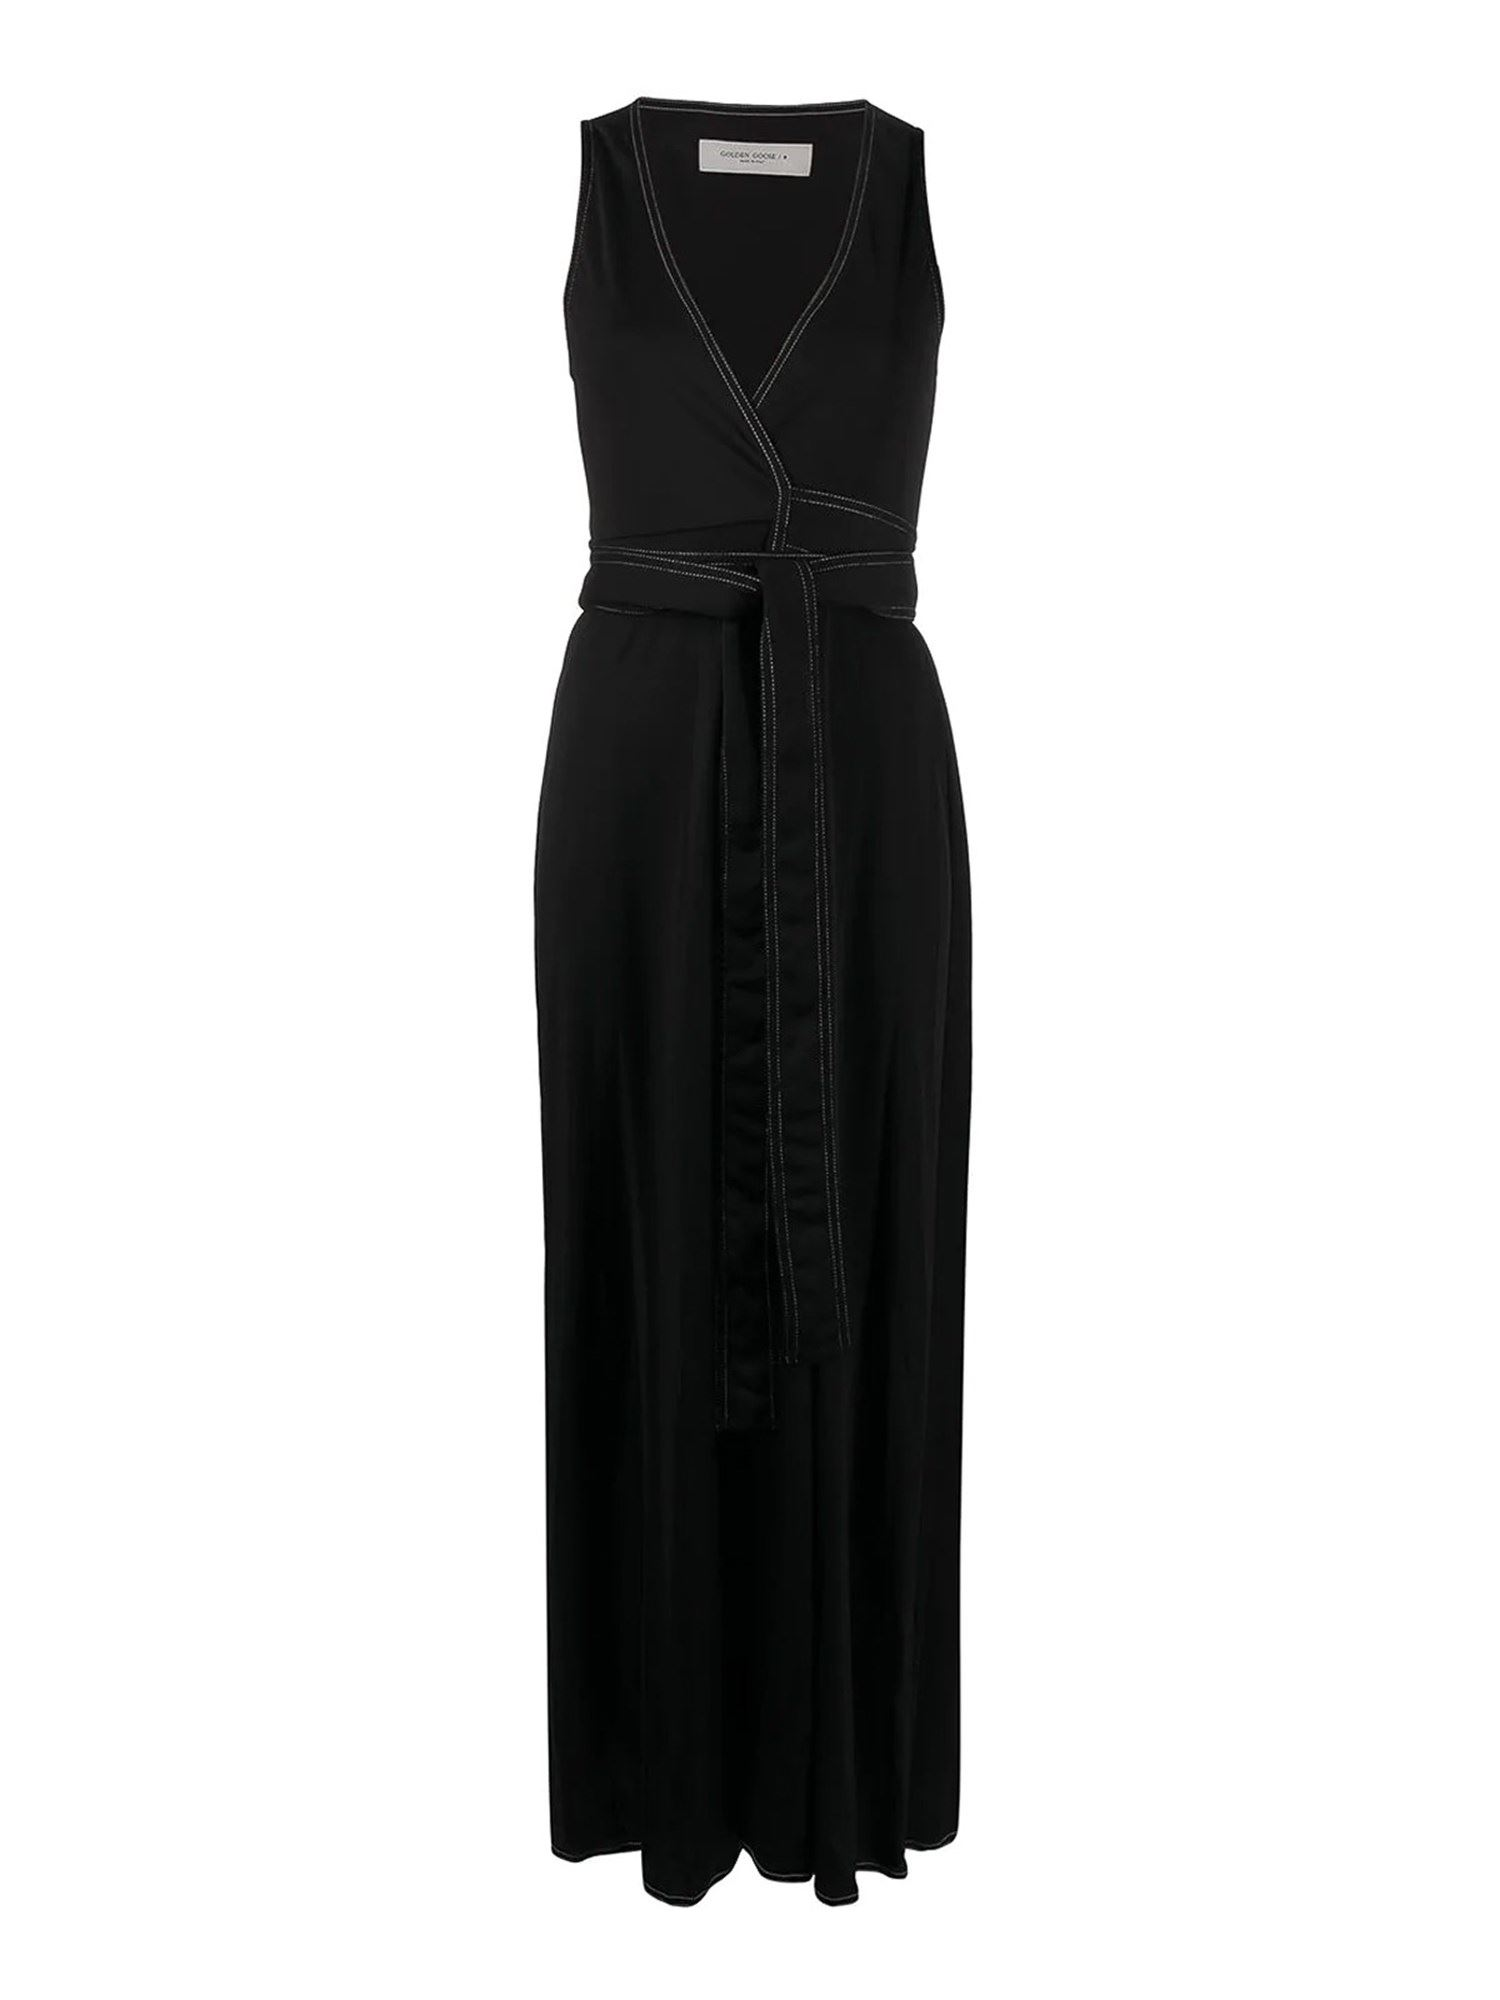 Golden Goose BLACK VISCOSE BLEND LONG DRESS